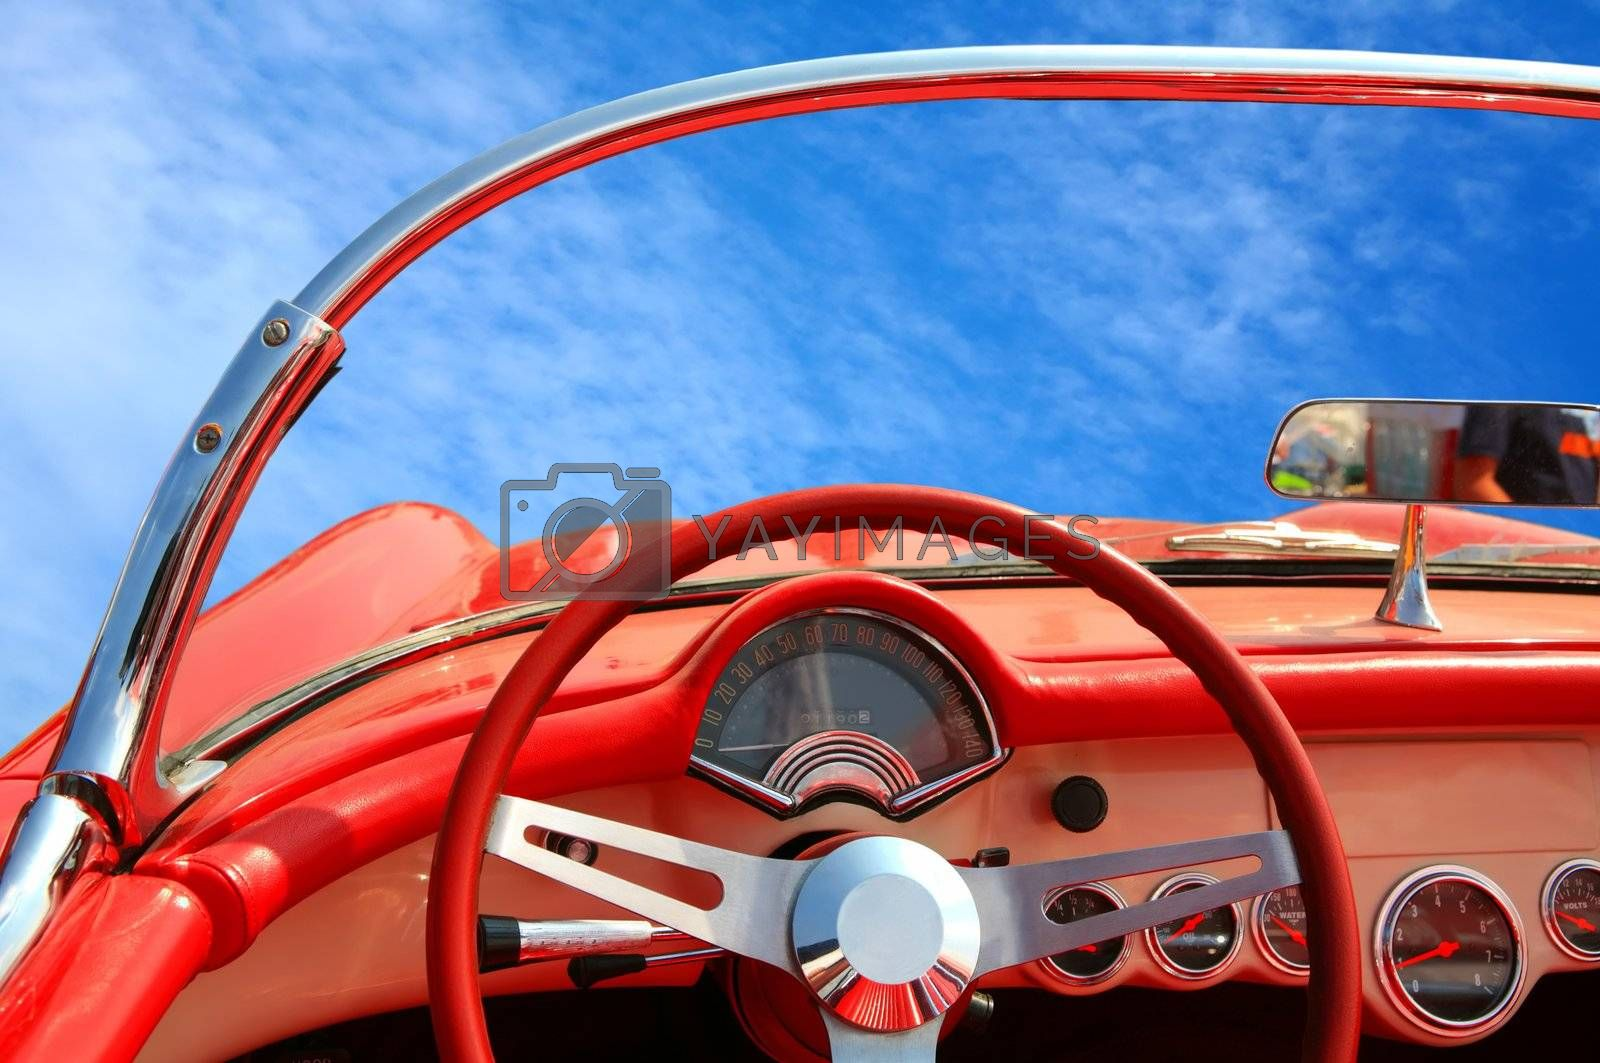 Royalty free image of stylish car by Astroid